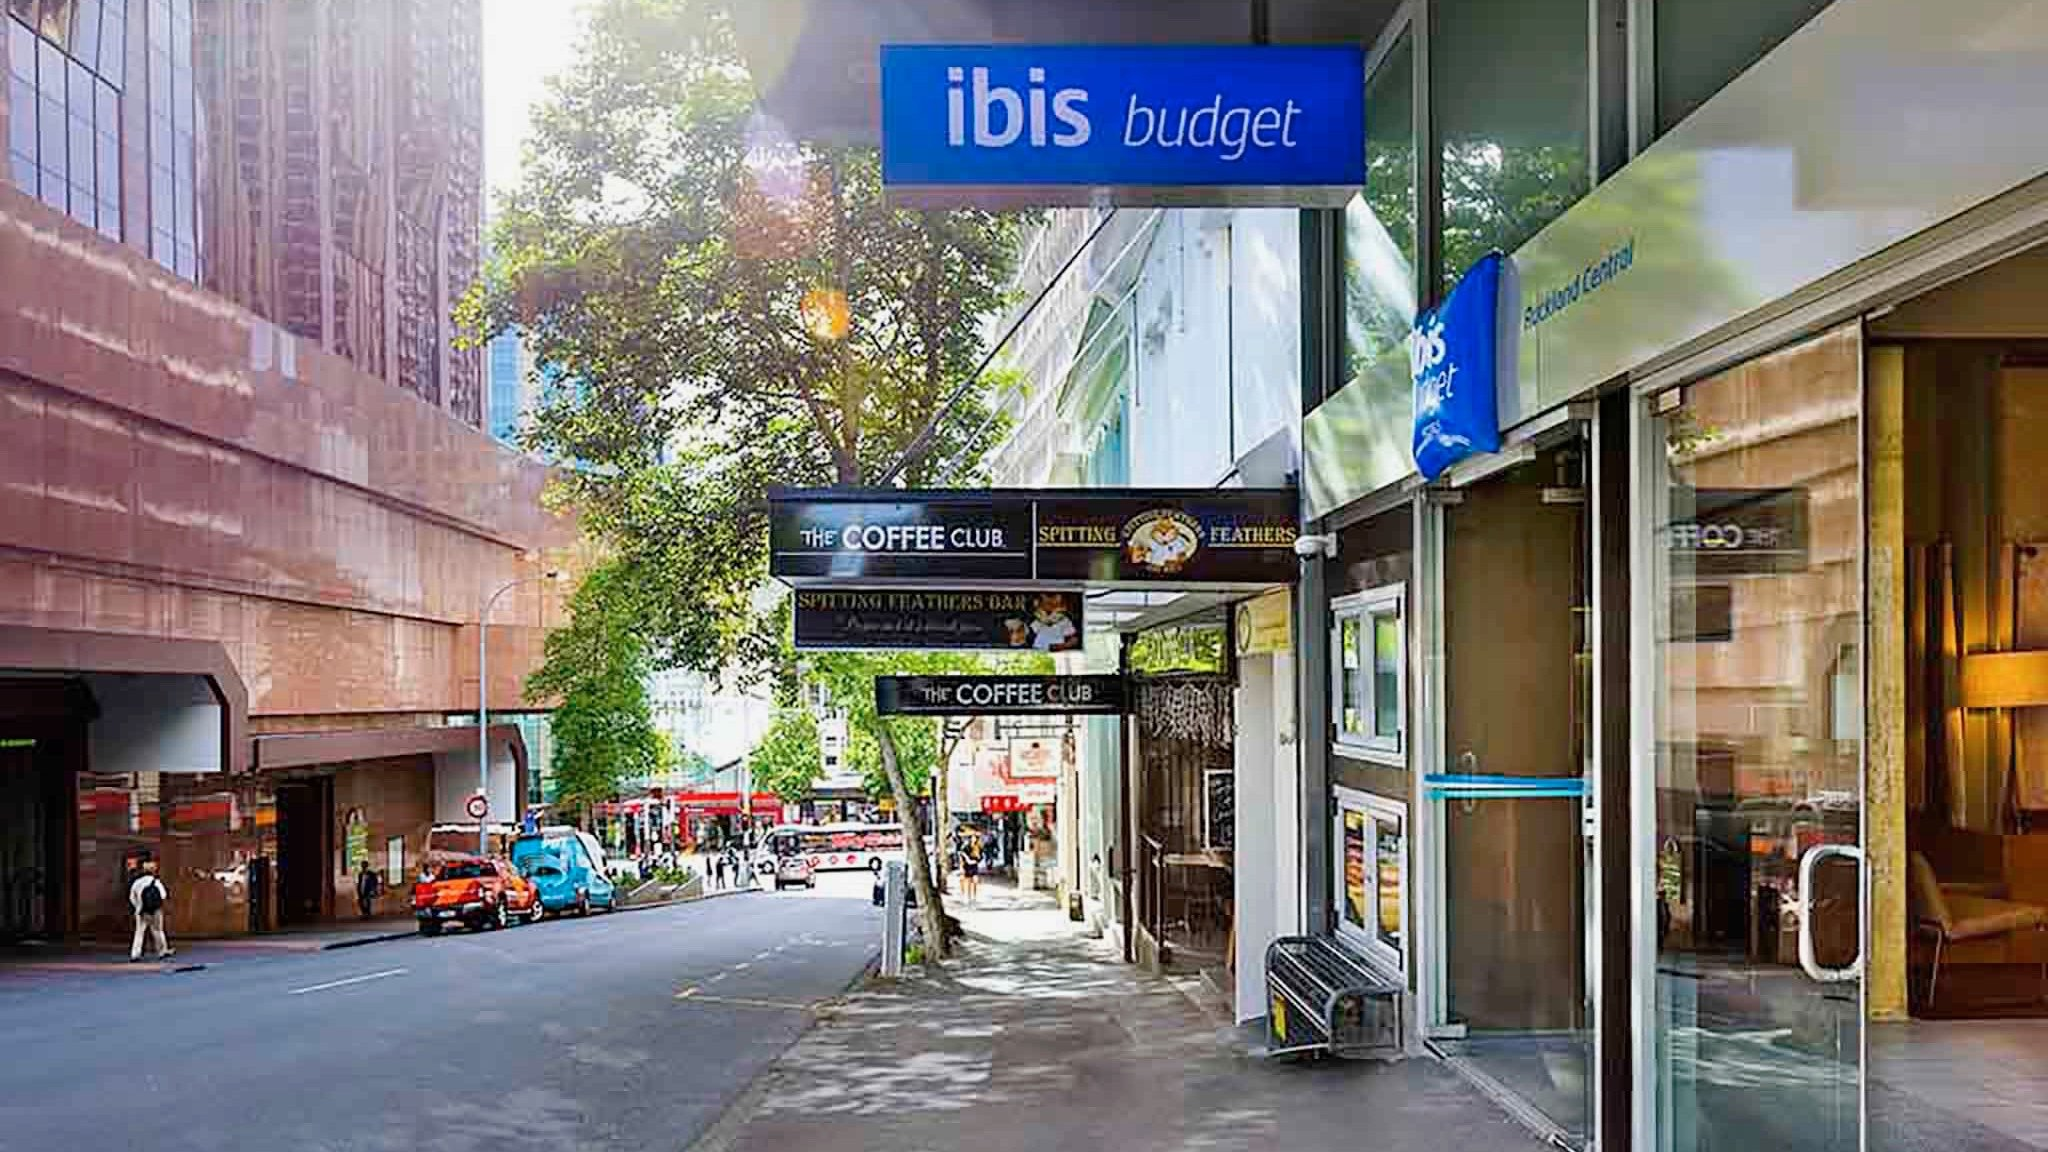 IBIS budget 3 star hotel in dontown Auckland